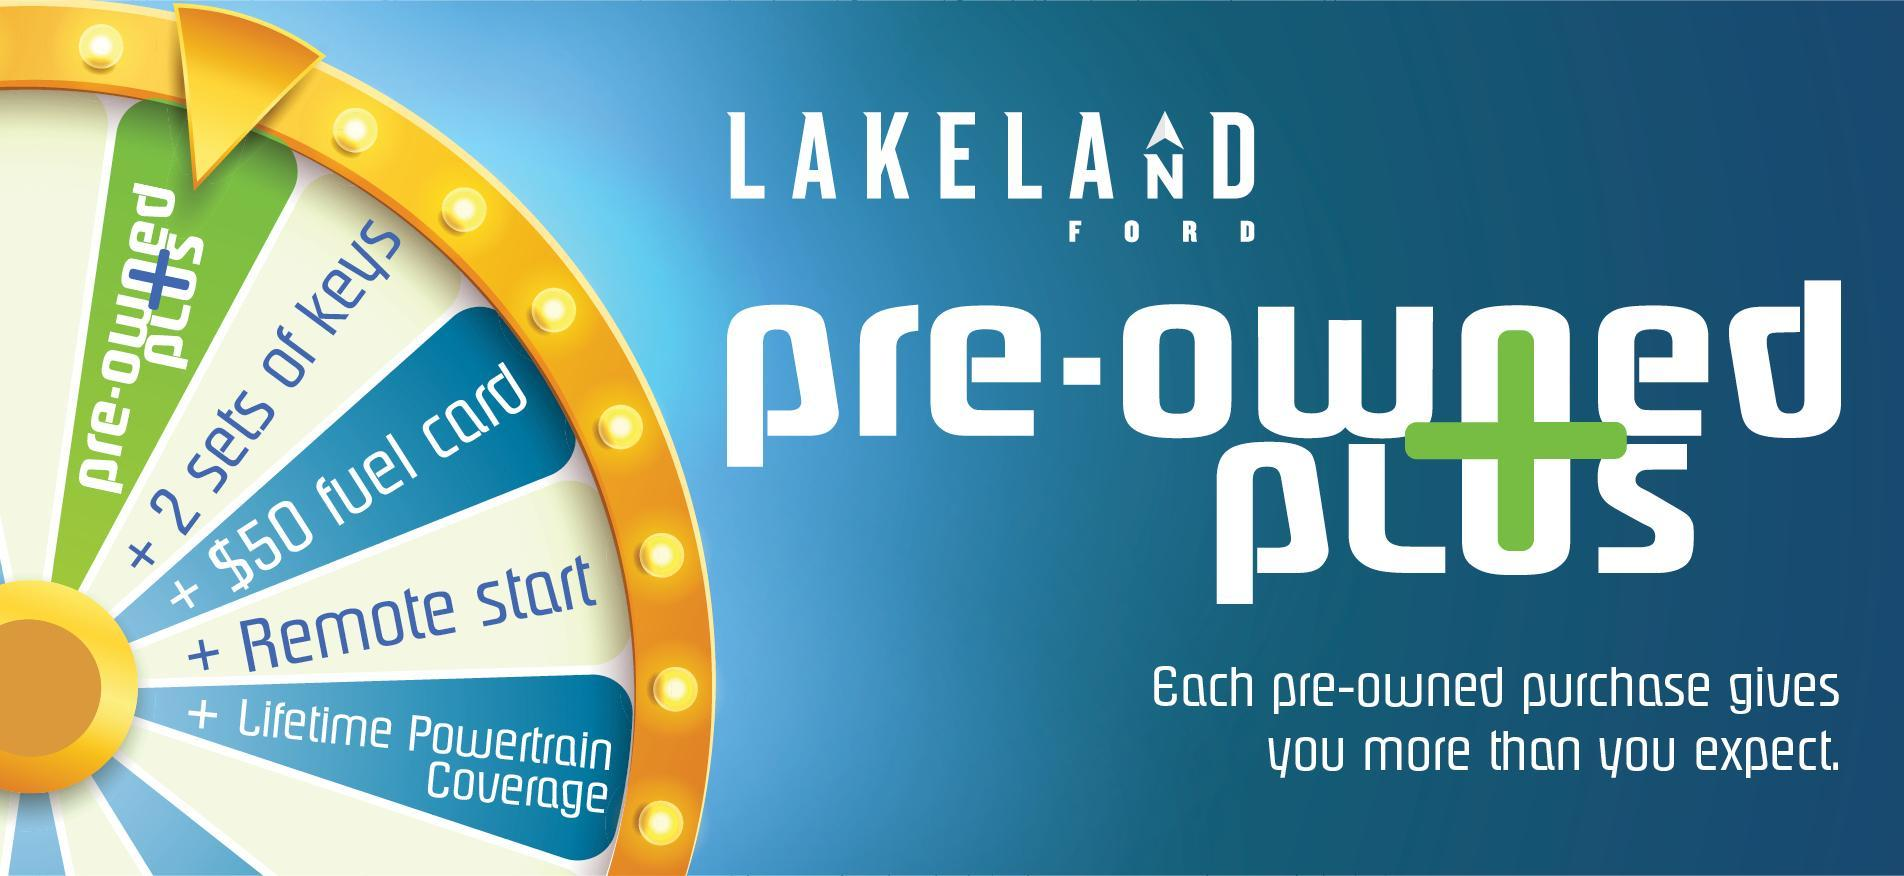 Ford Pre-Owned Plus at Lakeland Ford